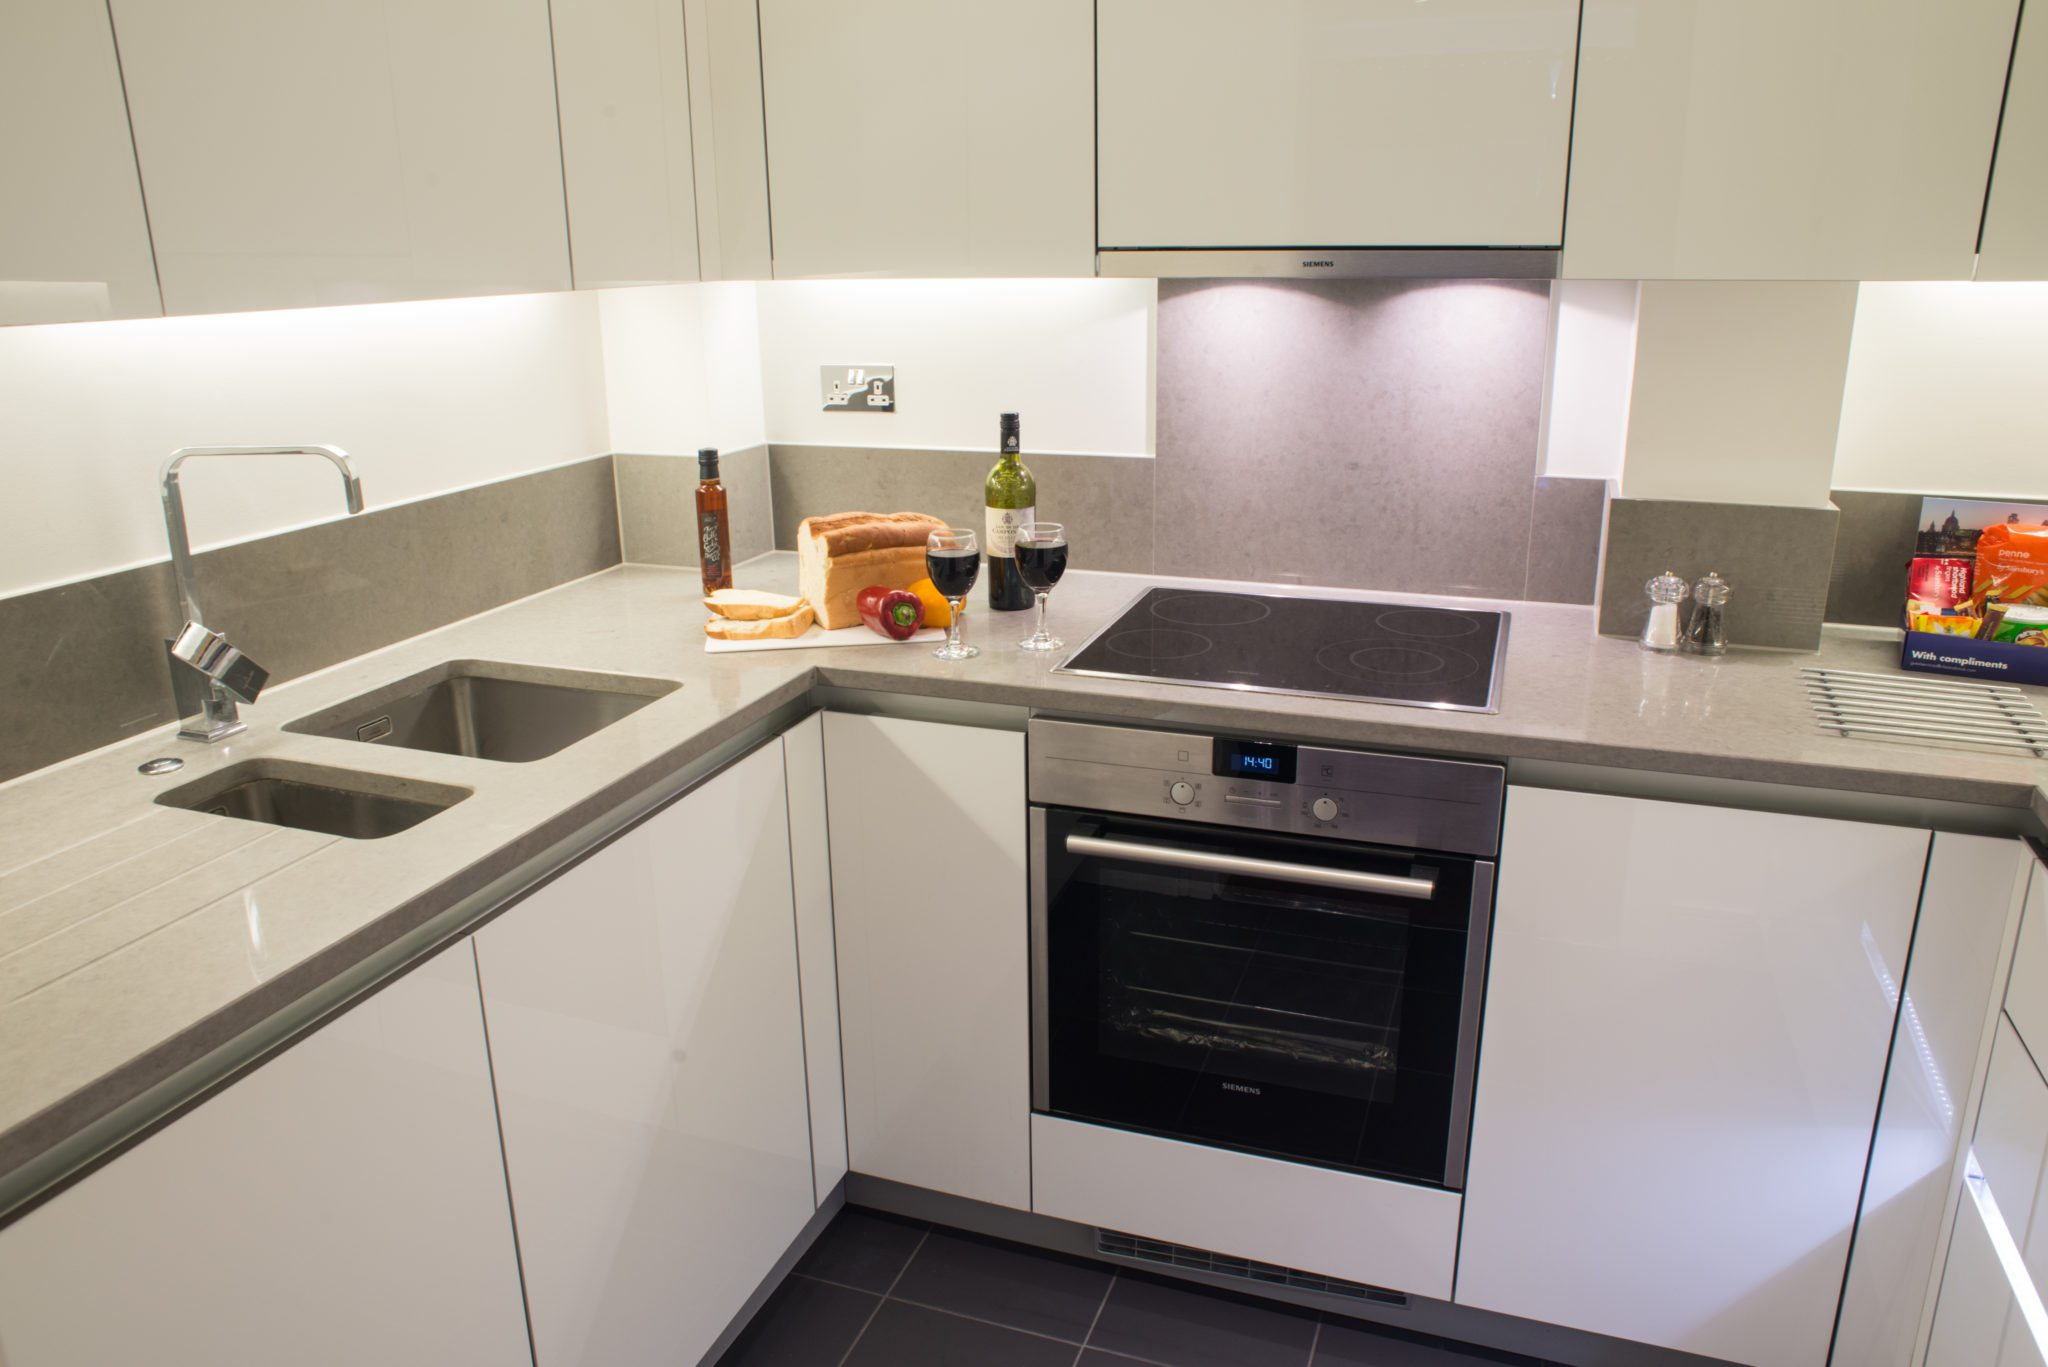 Serviced-Apartments-Ealing- -Corporate-Accommodation-West-London- -Short-Lets- -Corporate-Housing- -Relocation- -Award-Winning-&-Quality-Accredited-BOOK-NOW---Urban-Stay